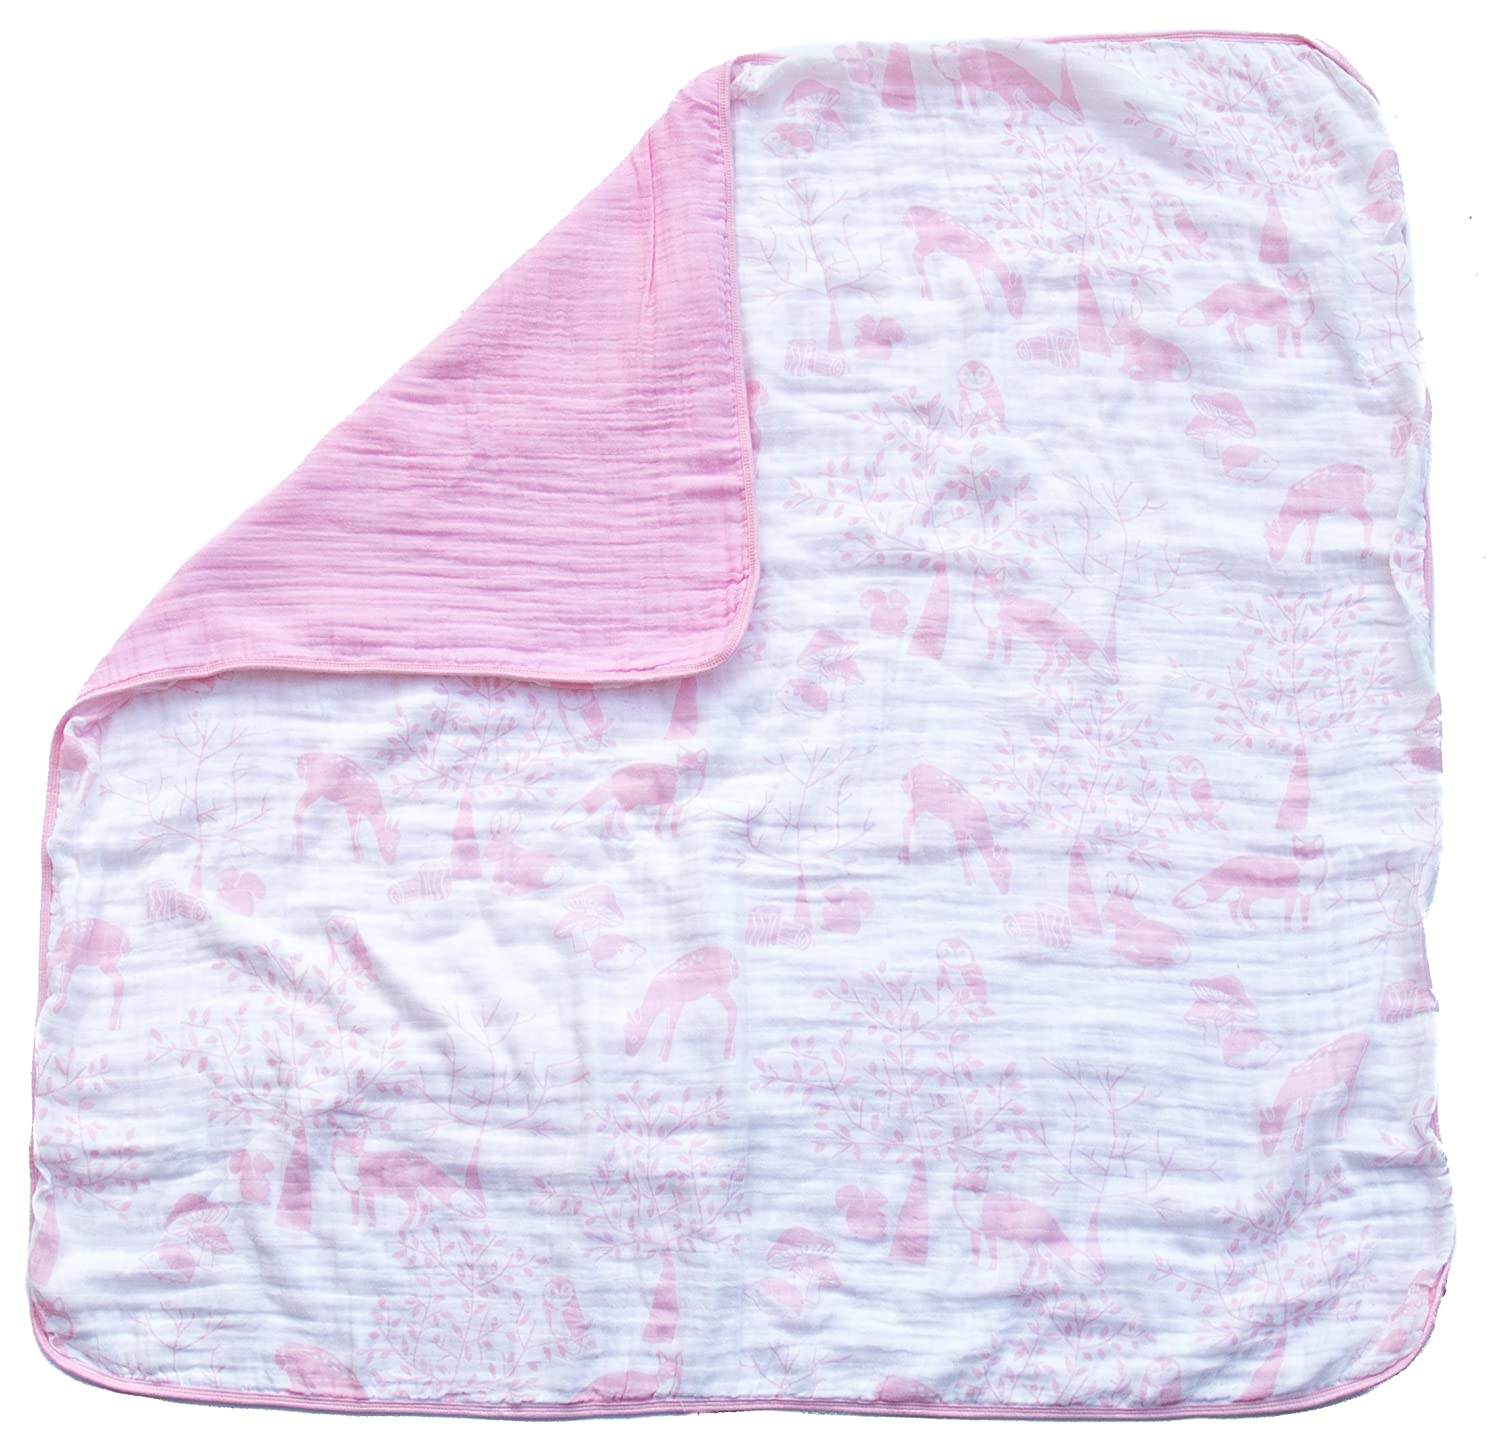 Cuddle Bears by Clover /& Sage 100/% Hypoallergenic Cotton Bed Blankets Organic Muslin Baby Toddler Blanket